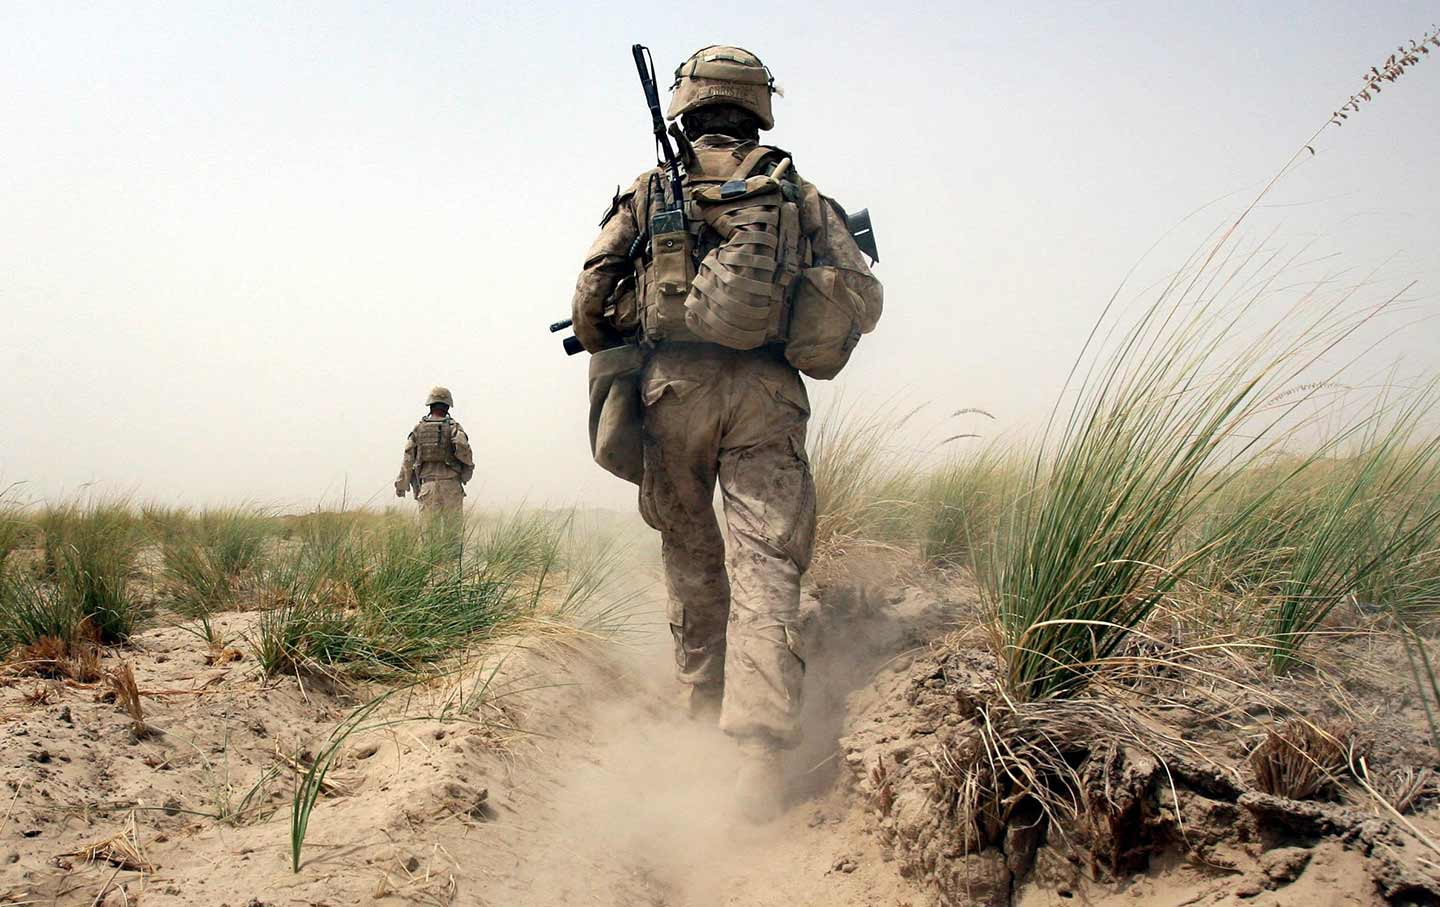 Marines on patrol in Afghanistan